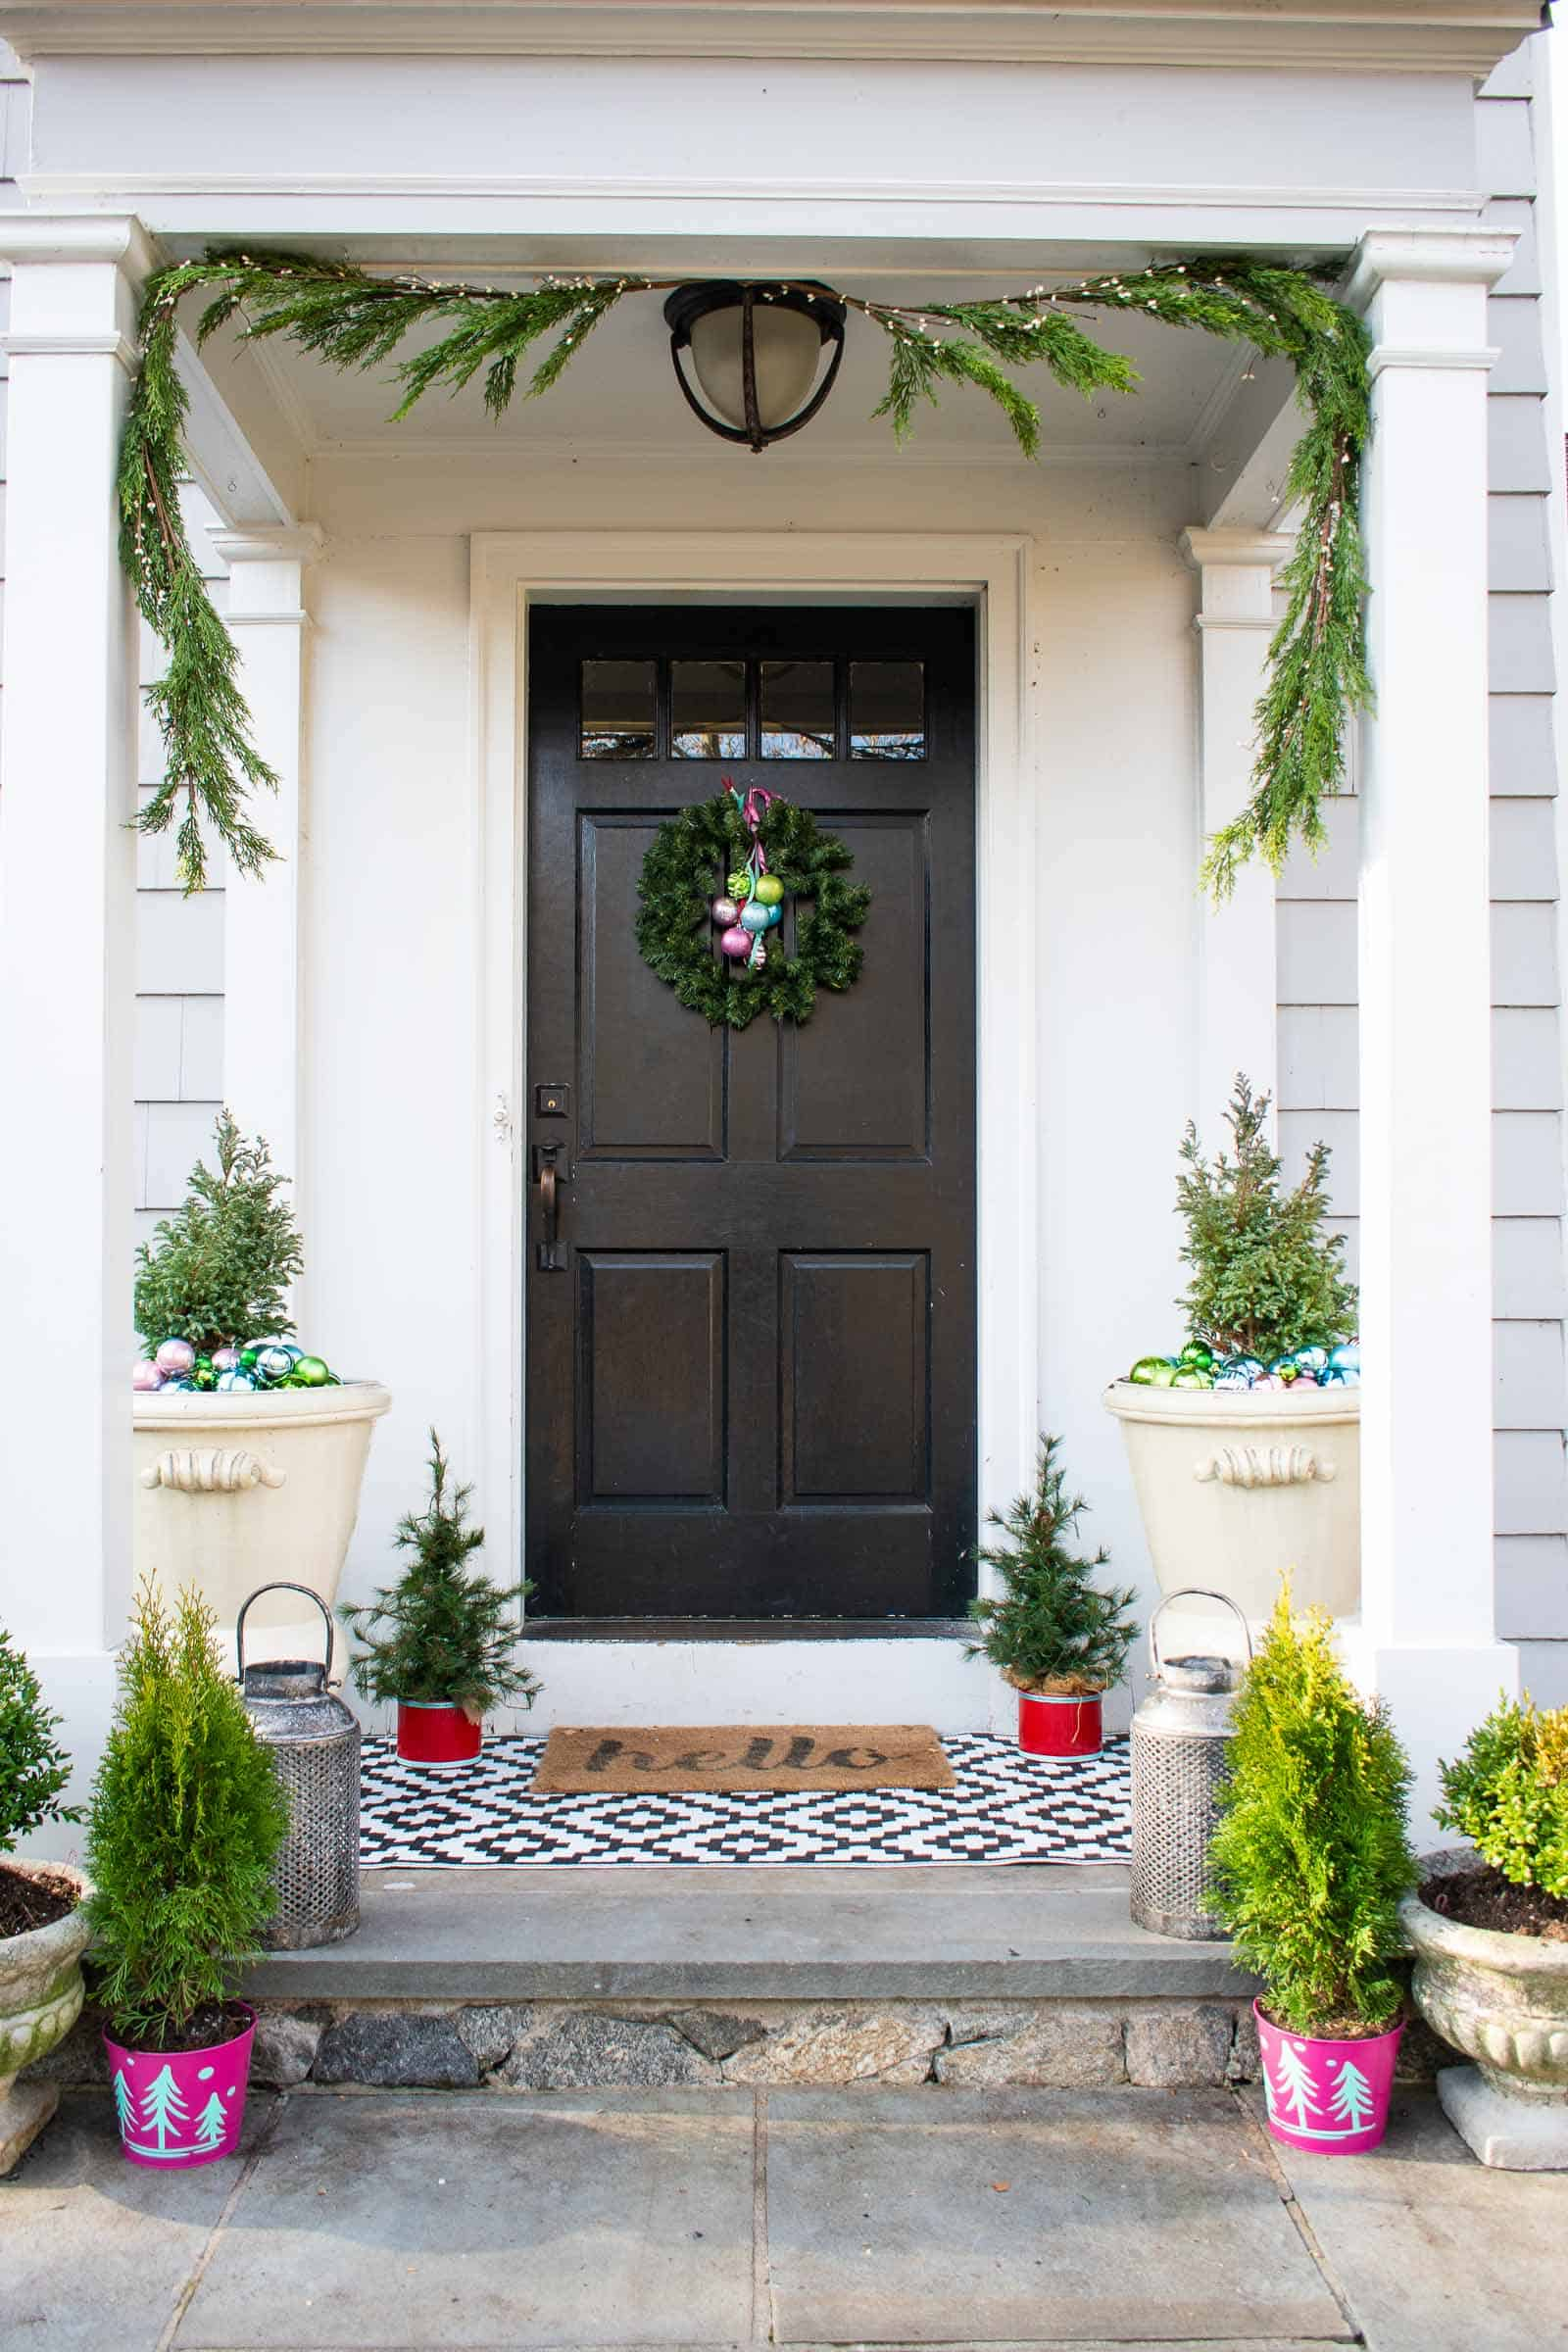 garland over the door